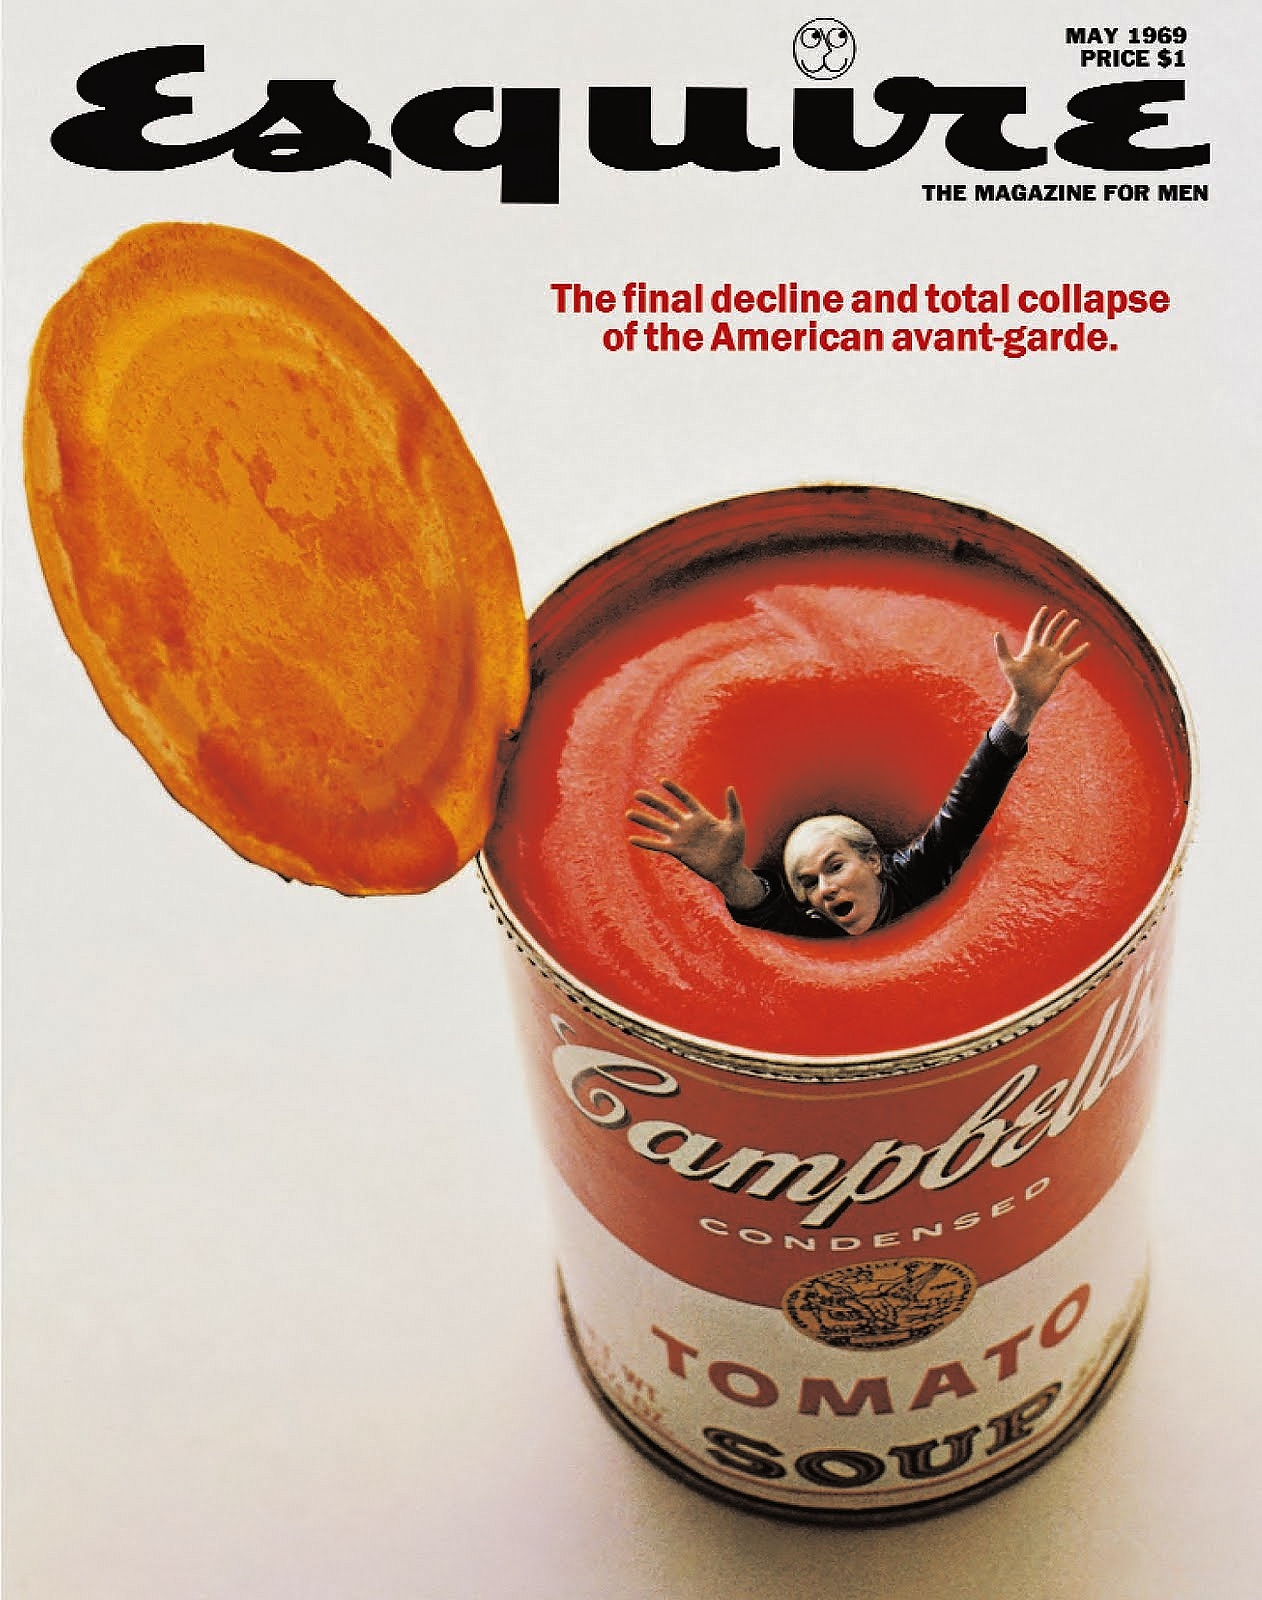 Andy Warhol in Soup - page 136-137